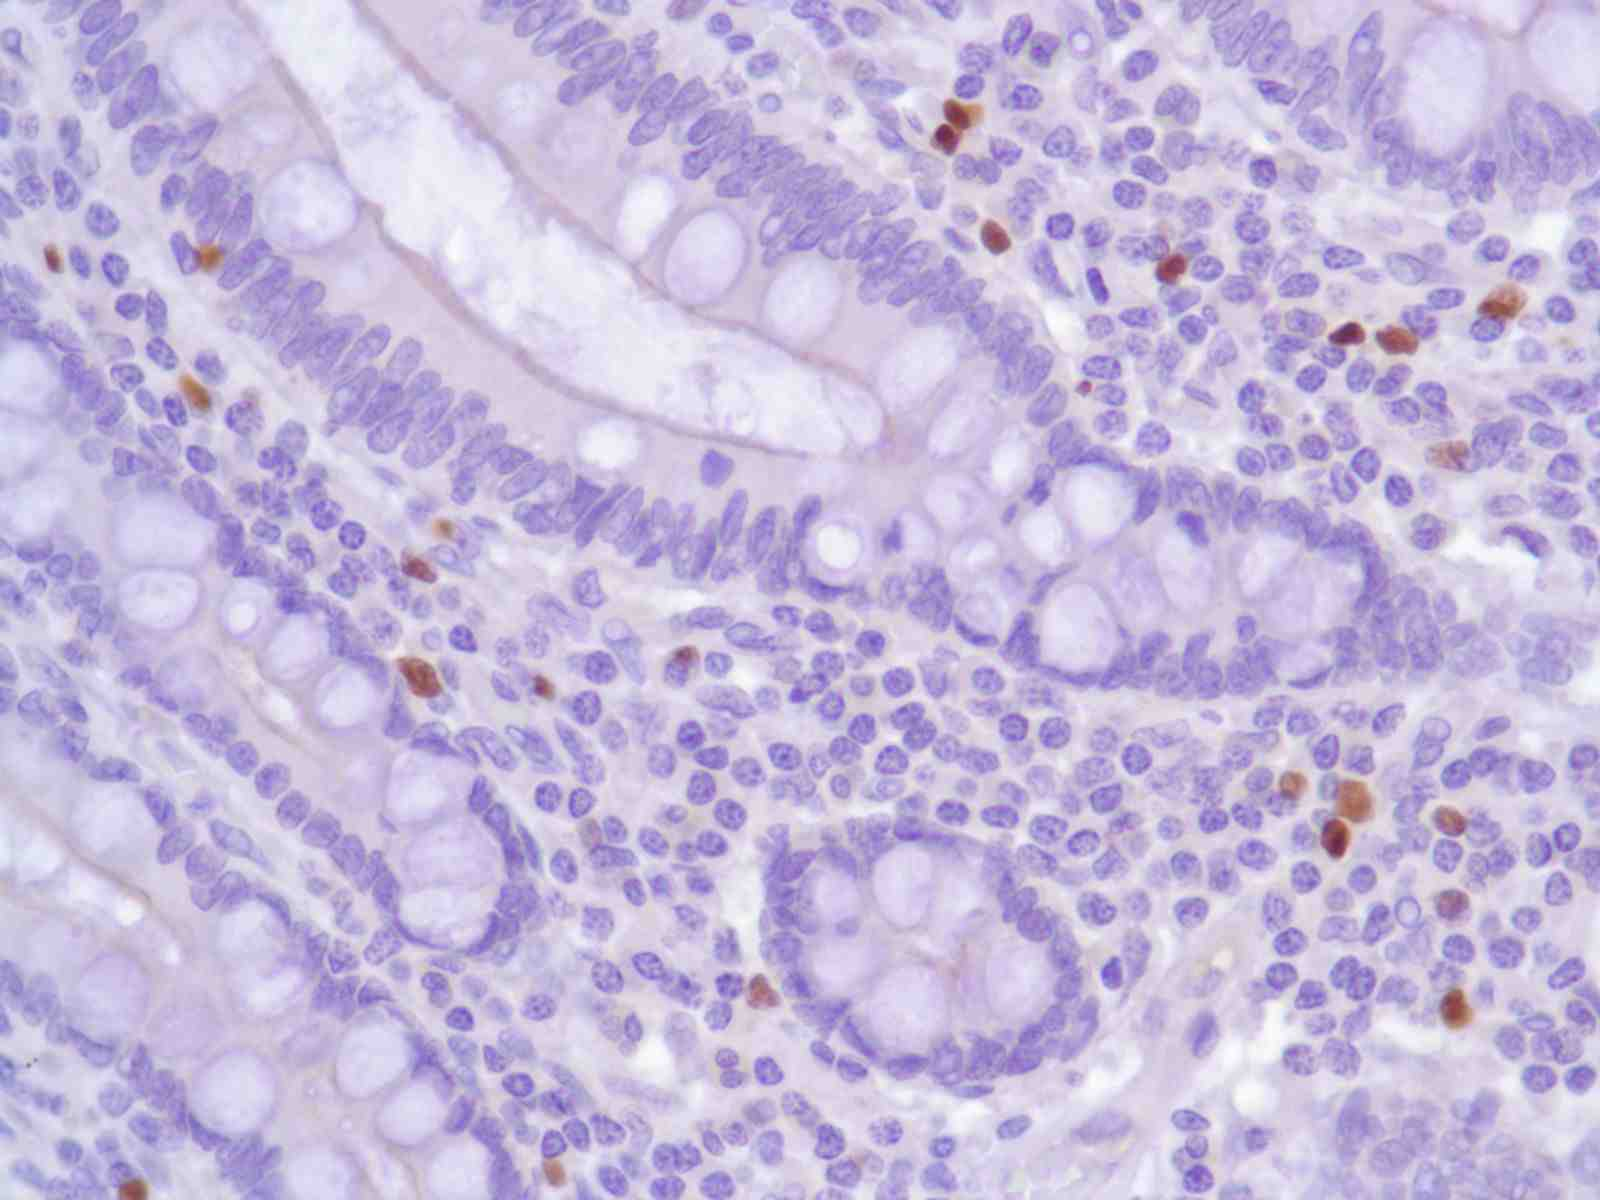 Human Colon stained with anti-FoxP3 antibody